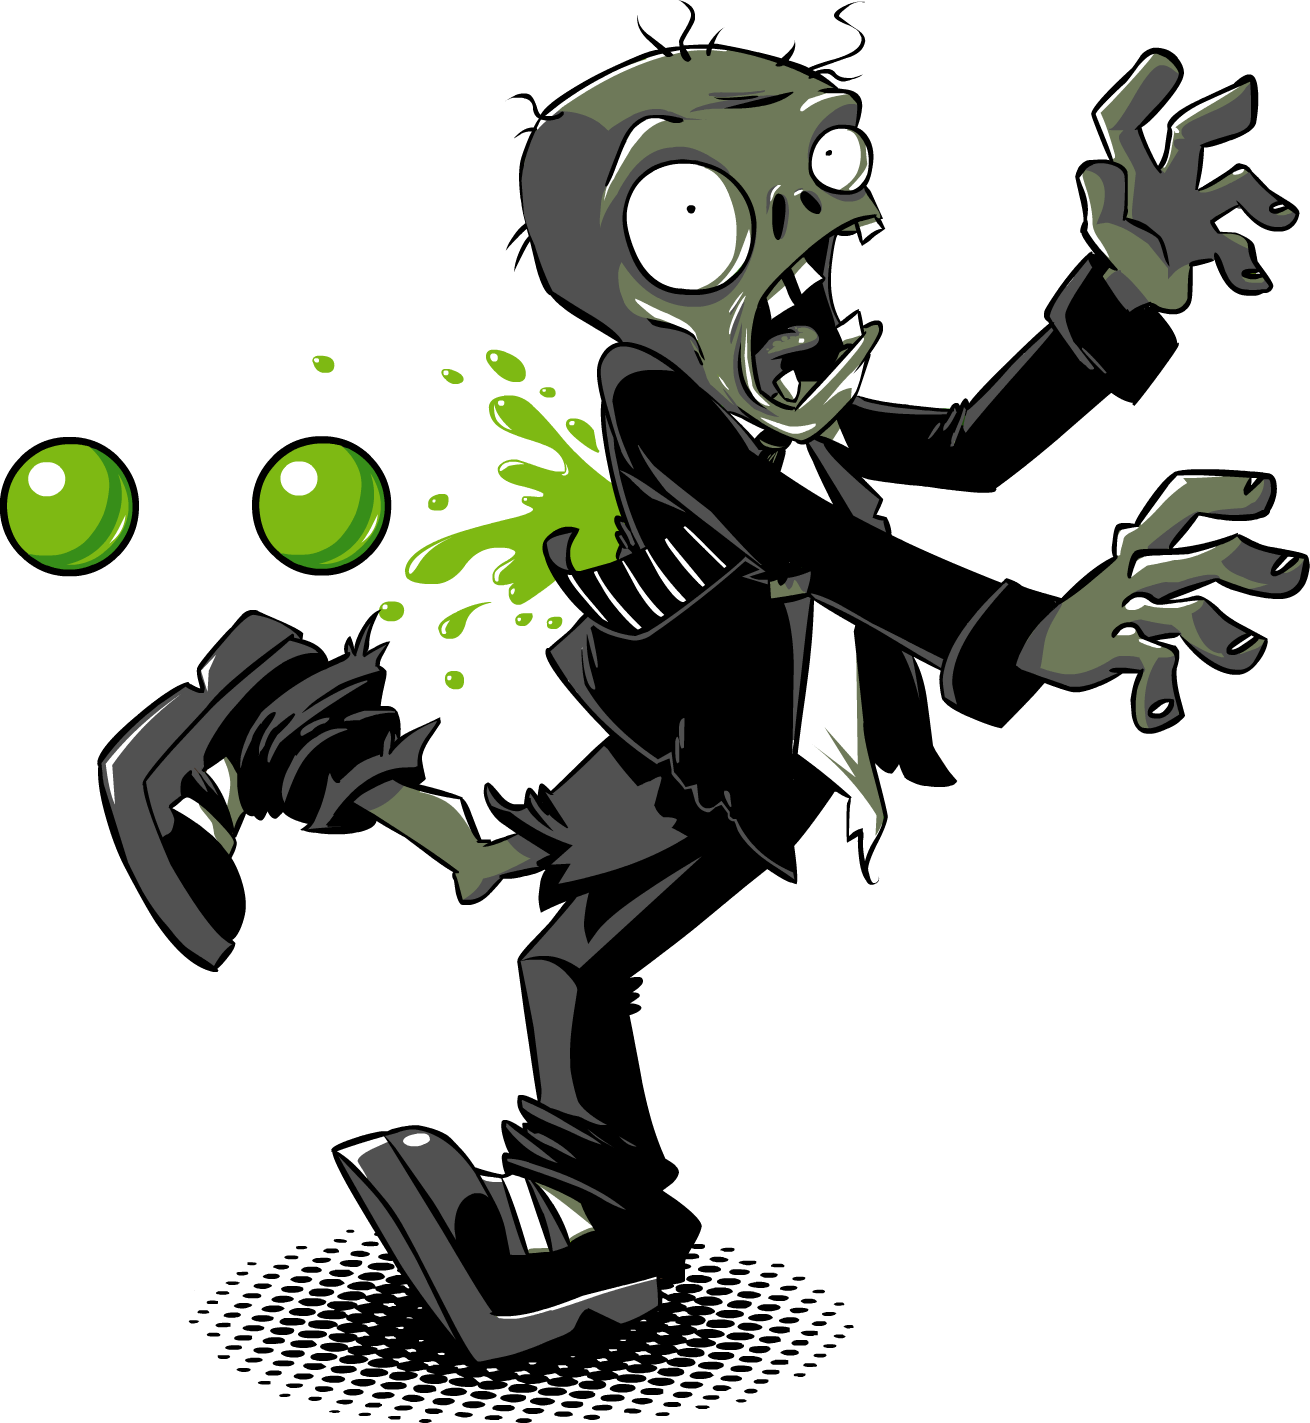 Plants vs zombies zombie png. Photo mart